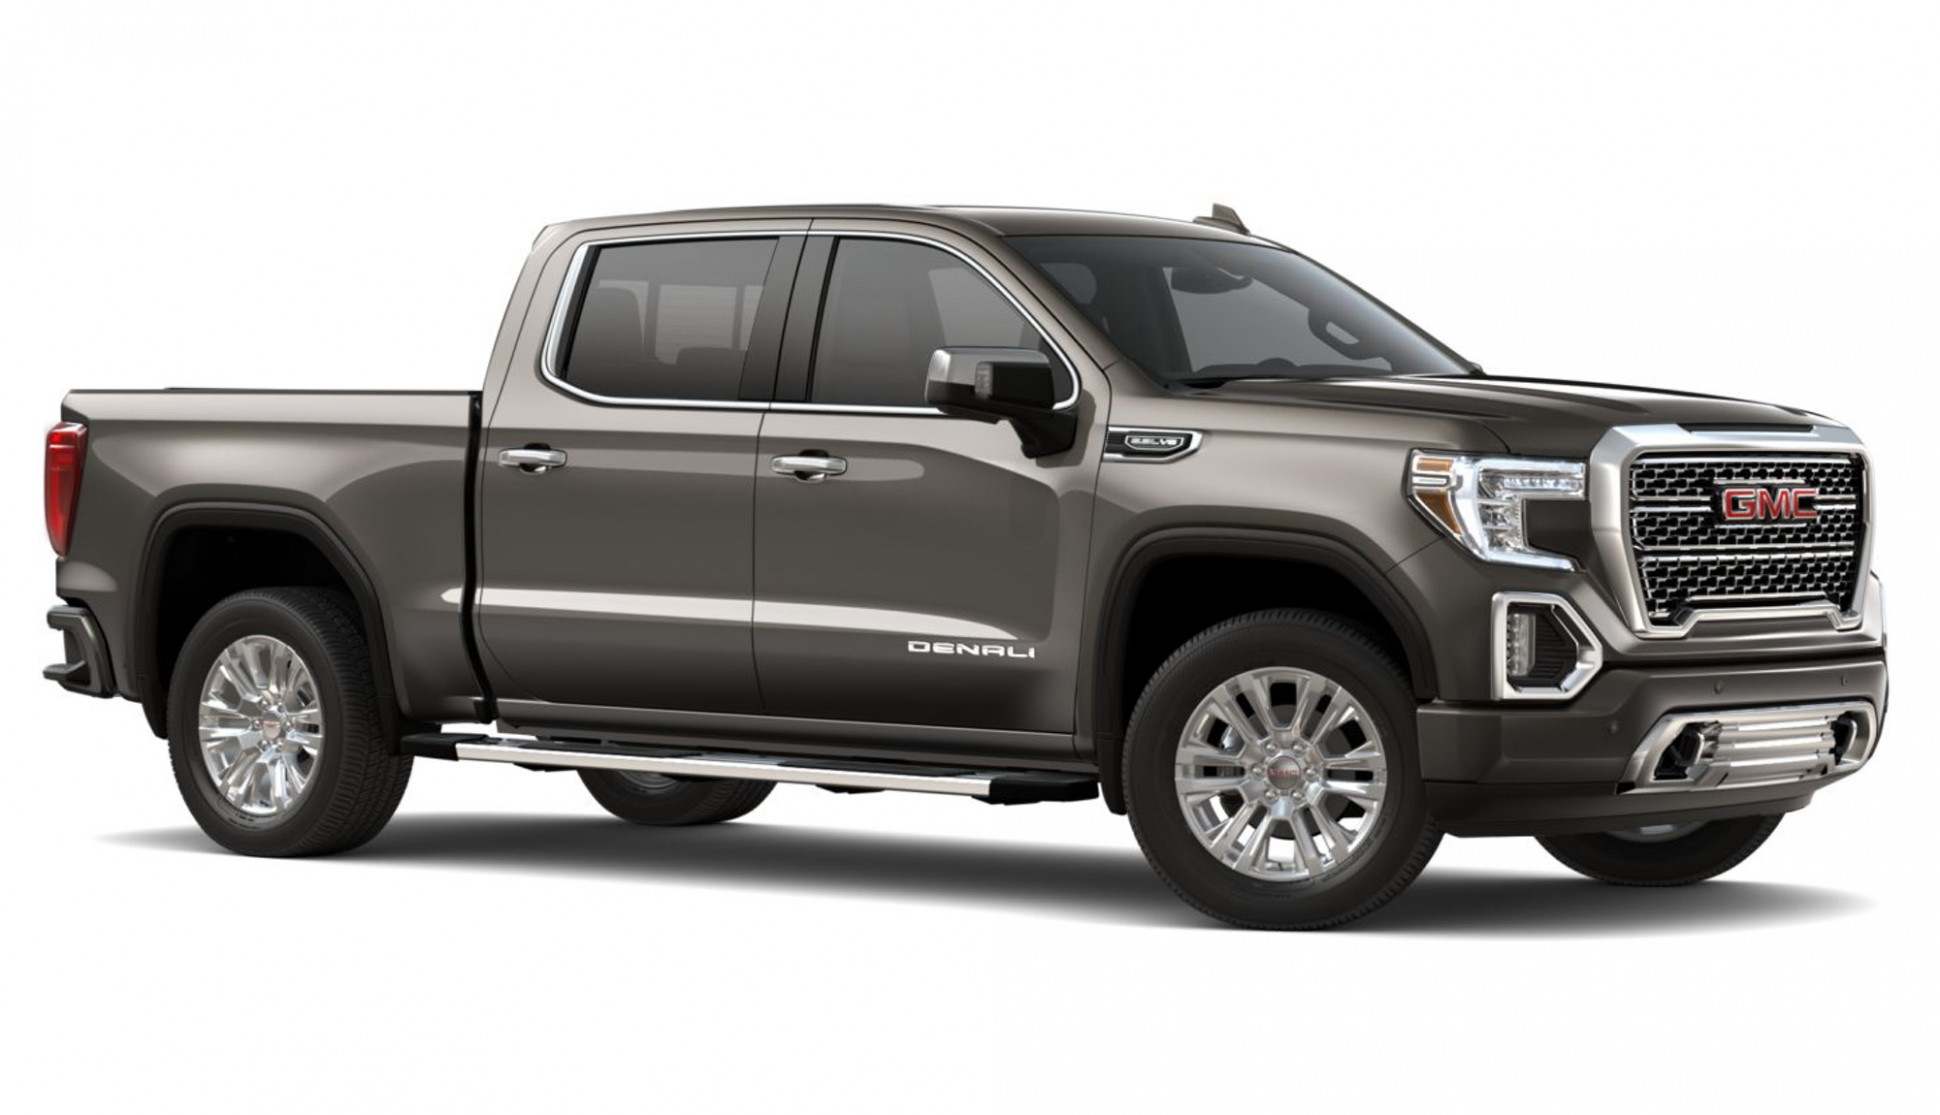 7 Sierra 7 Ditches This Paint Option, Gains New One | GM ...